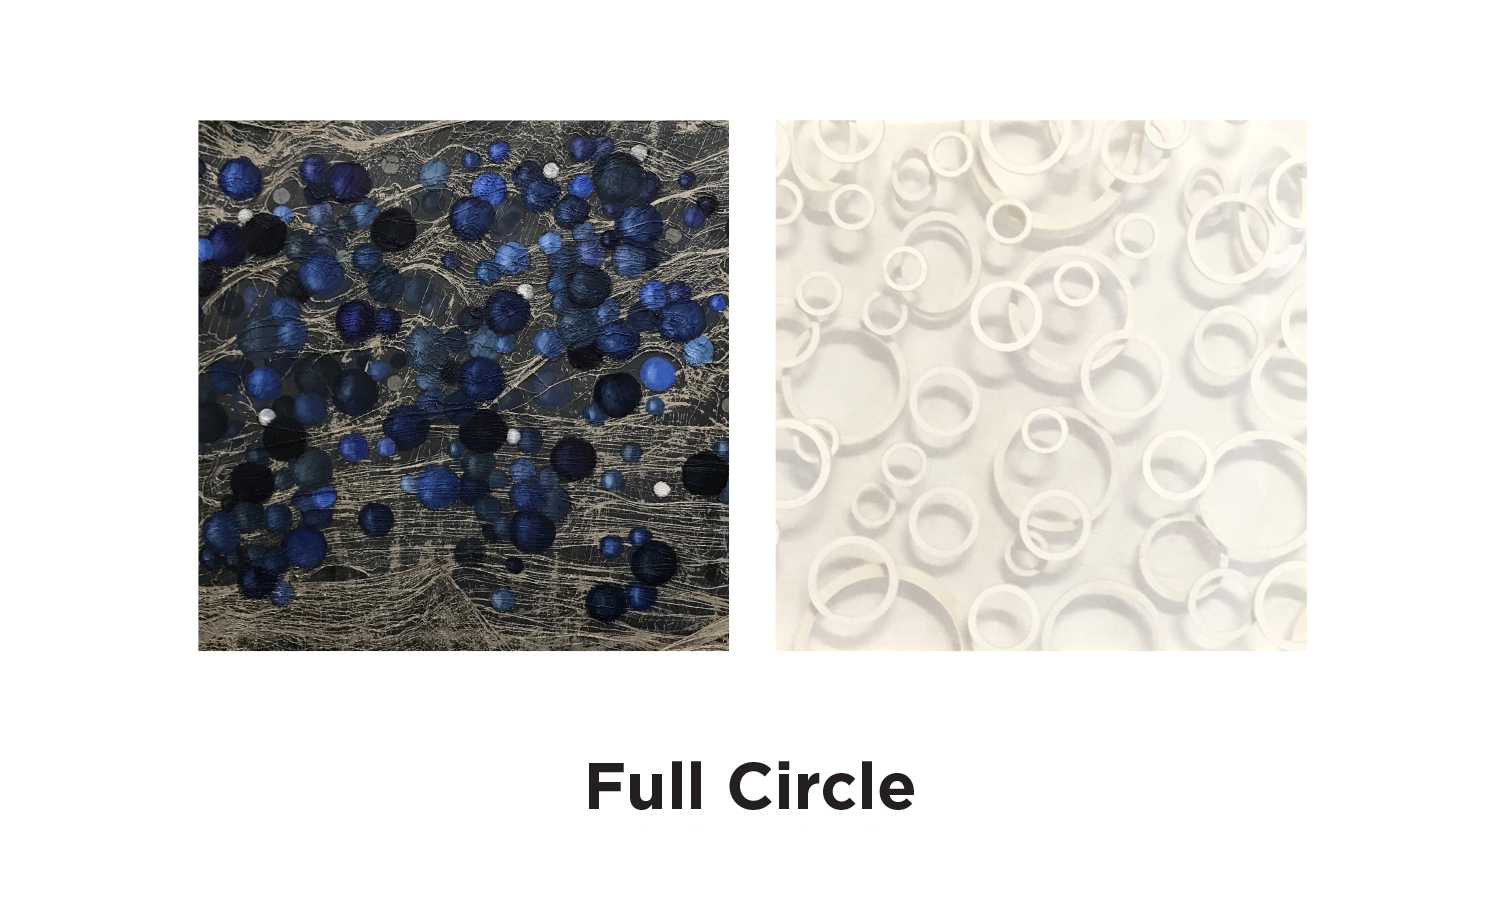 Full Circle - September 5 – October 28, 2017